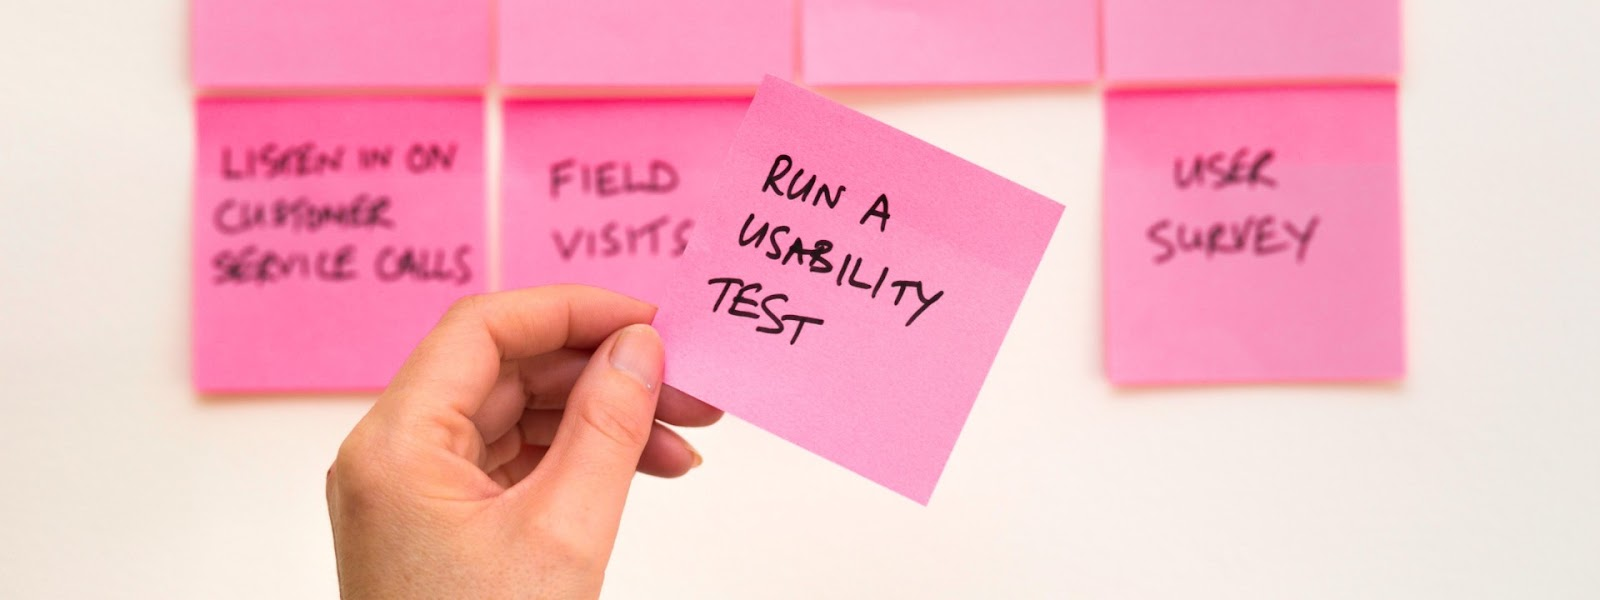 run tests to see if your idea works